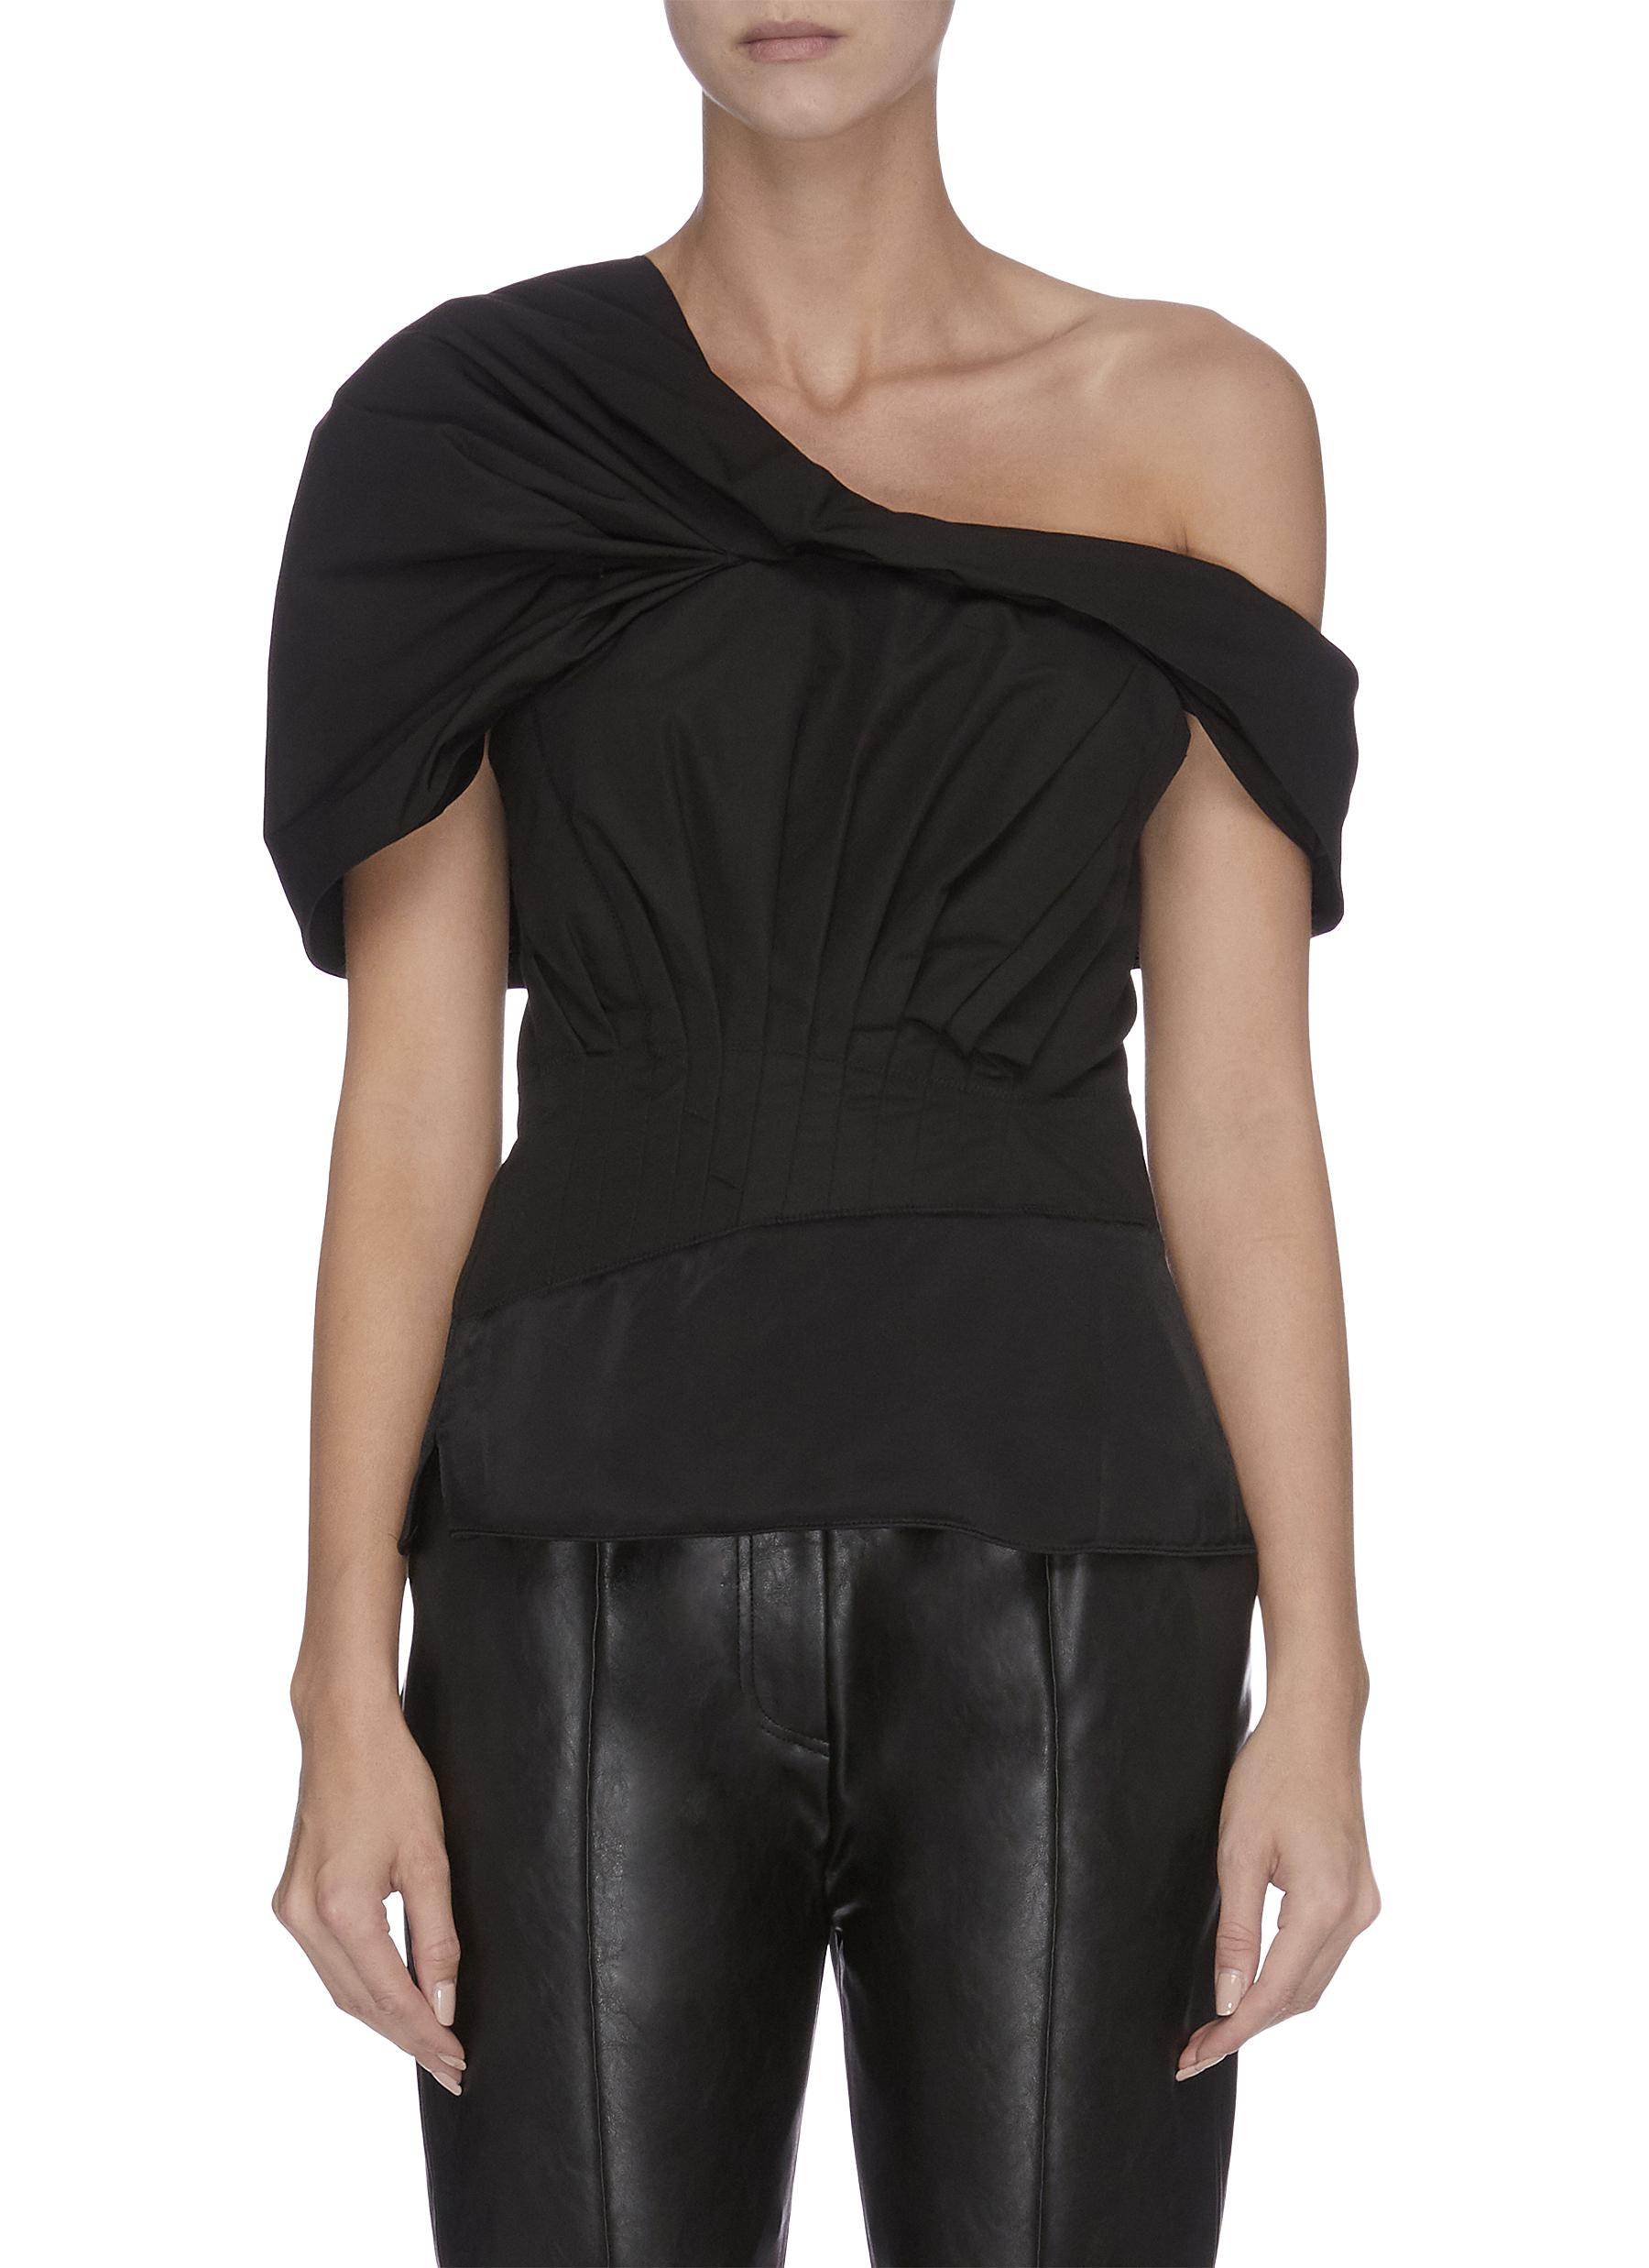 Off shoulder drape panelled top - 3.1 PHILLIP LIM - Modalova